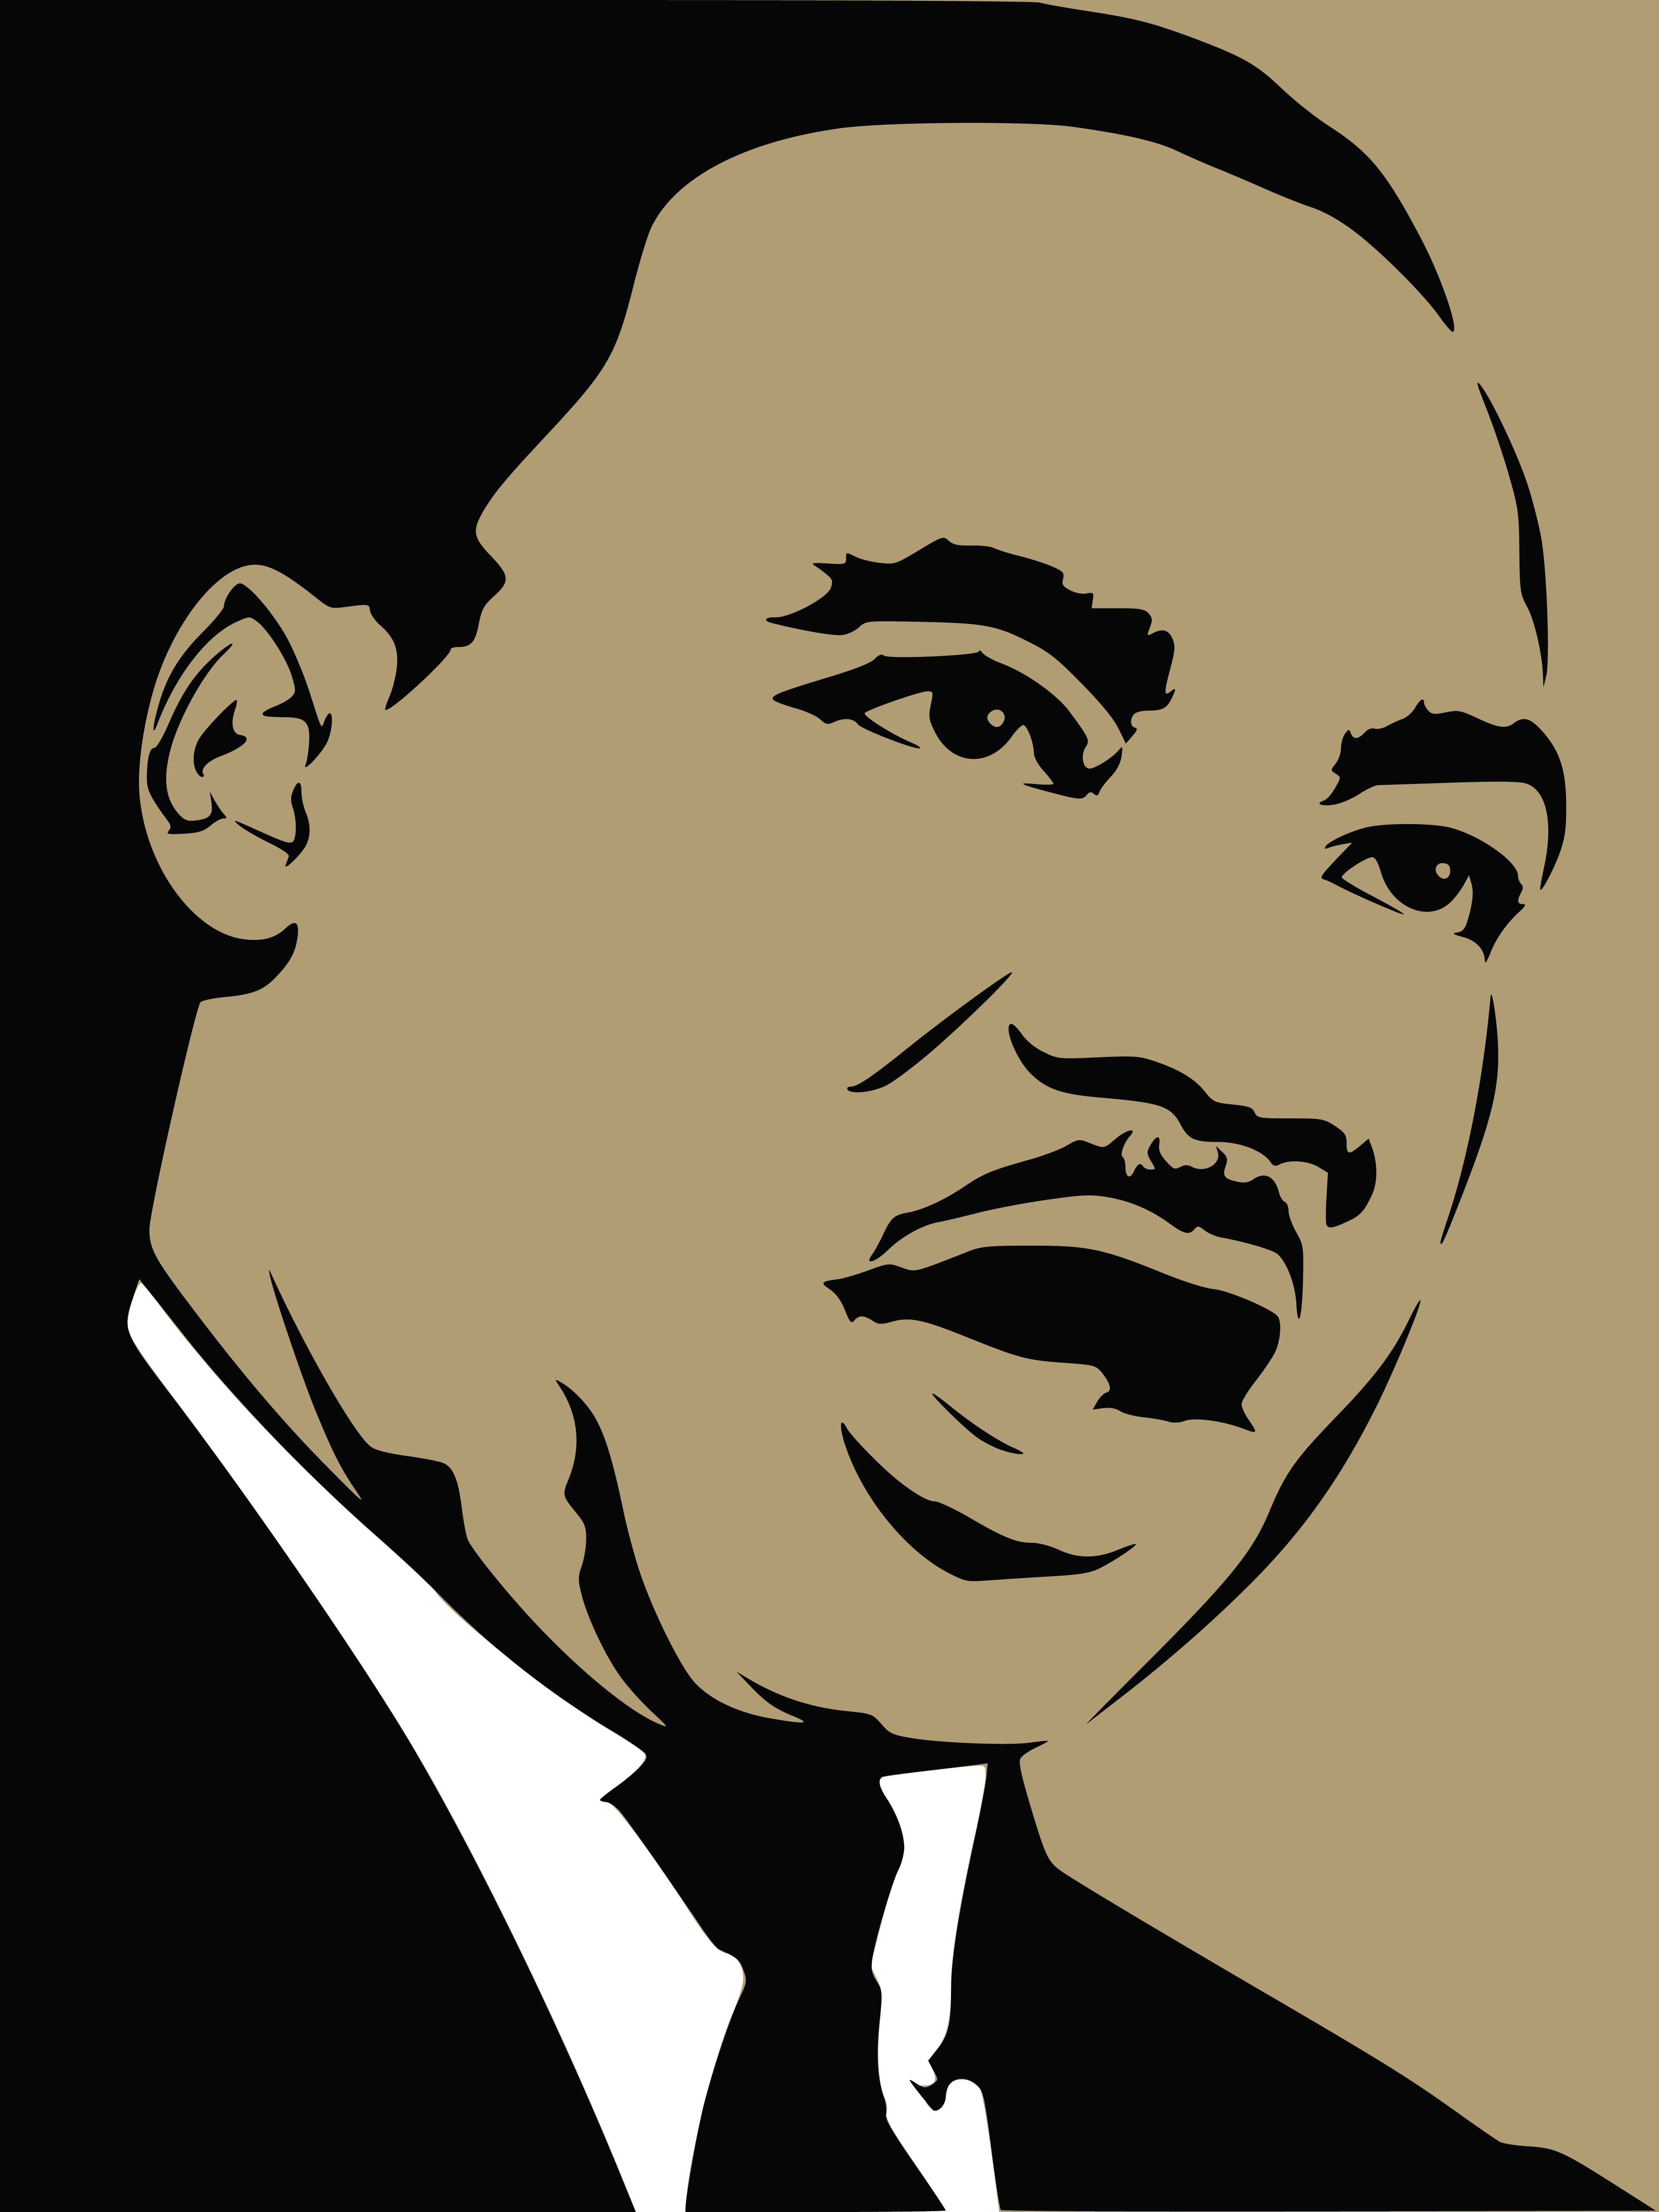 Martin luther jr clipart theme. Plush design king of